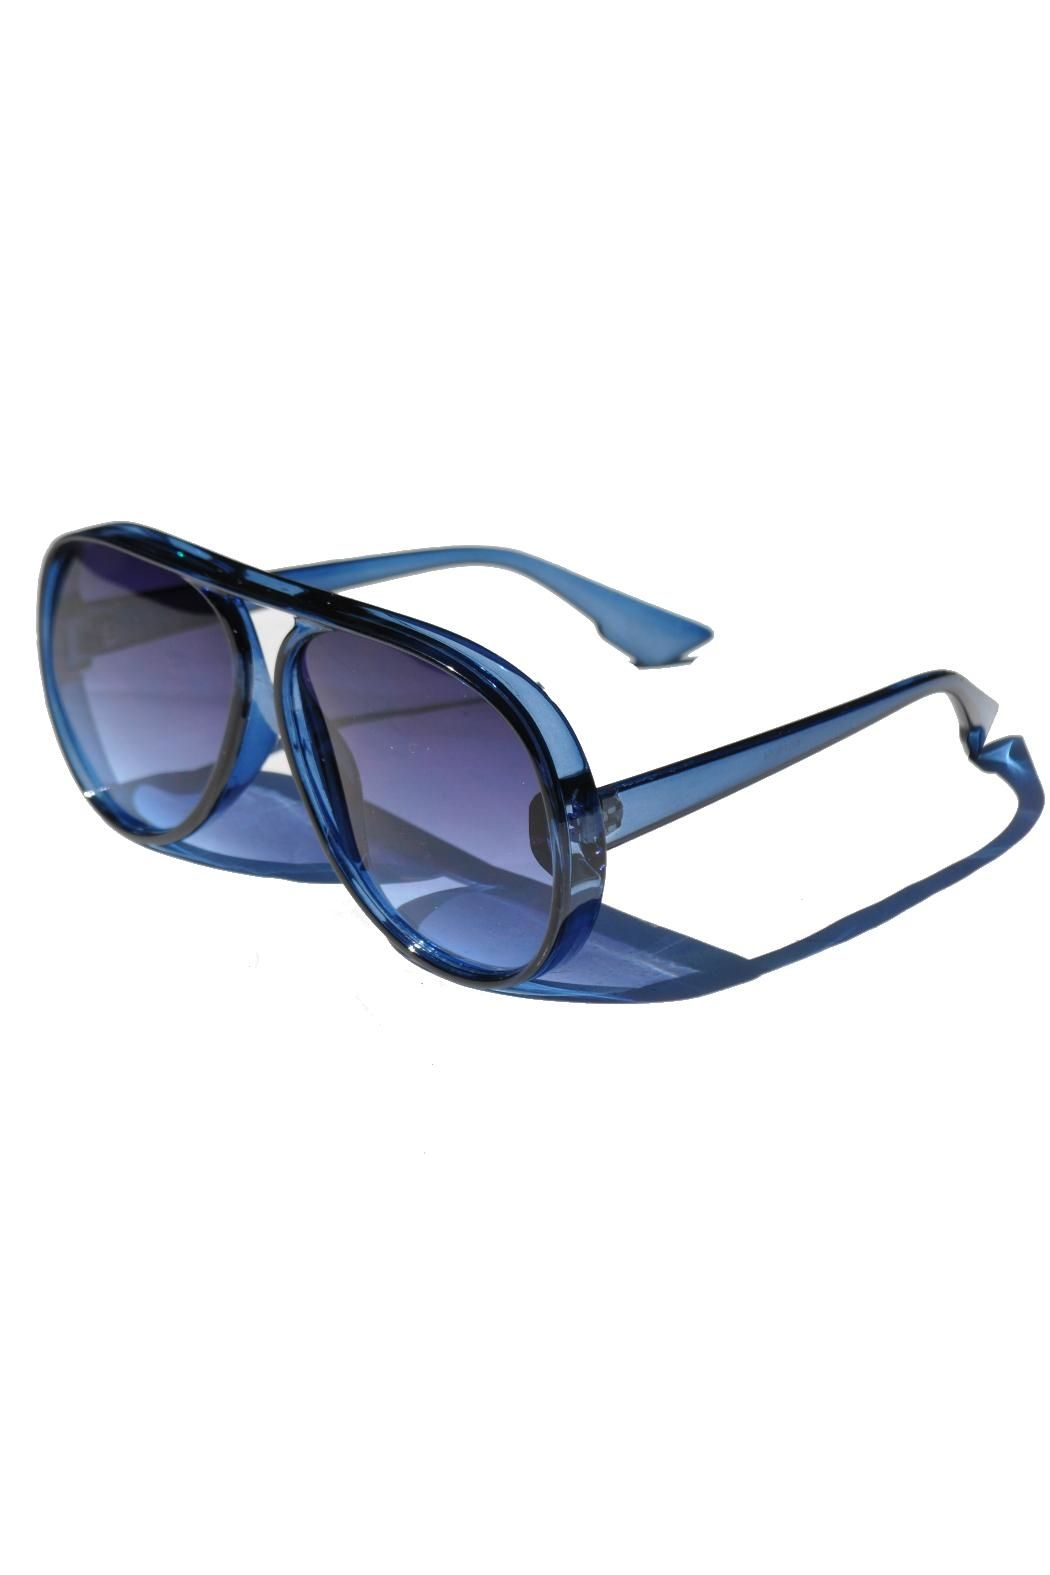 28f4fce649 These sunglasses tho. Everyone else has them in black or brown. Minx  Oversized Aviator Sunglasses - Front Full Image